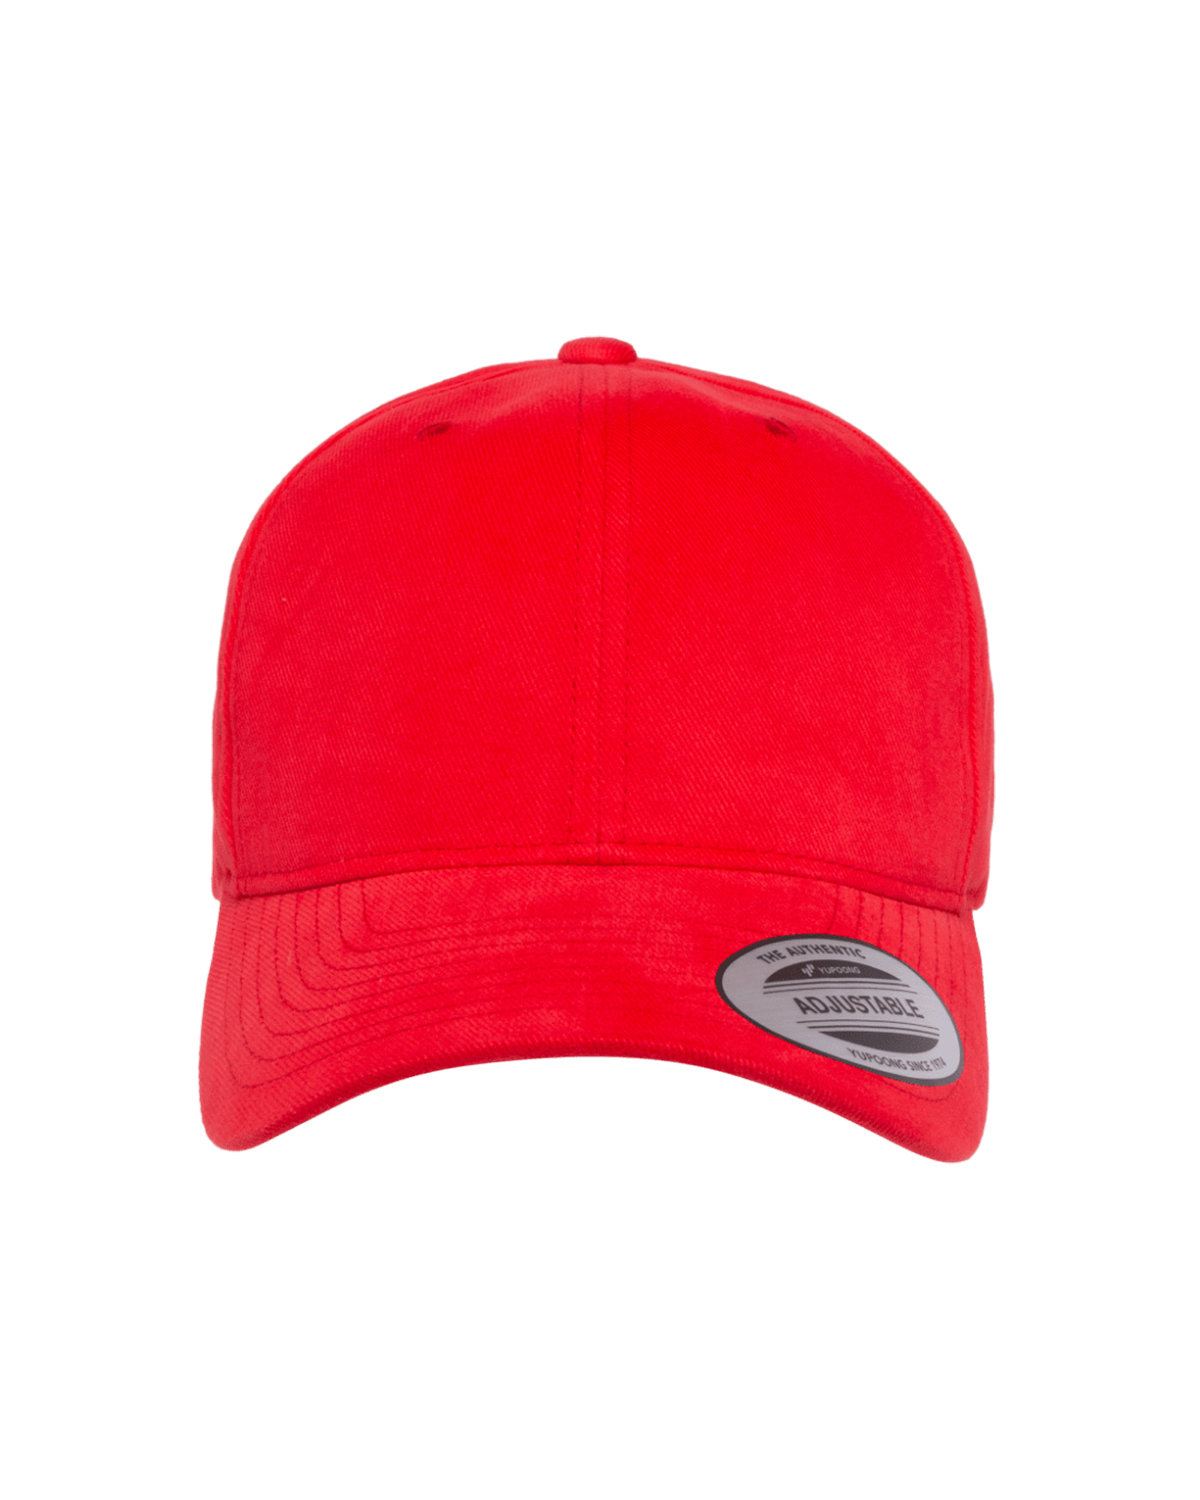 Yupoong Adult Brushed Cotton Twill Mid-Profile Cap RED